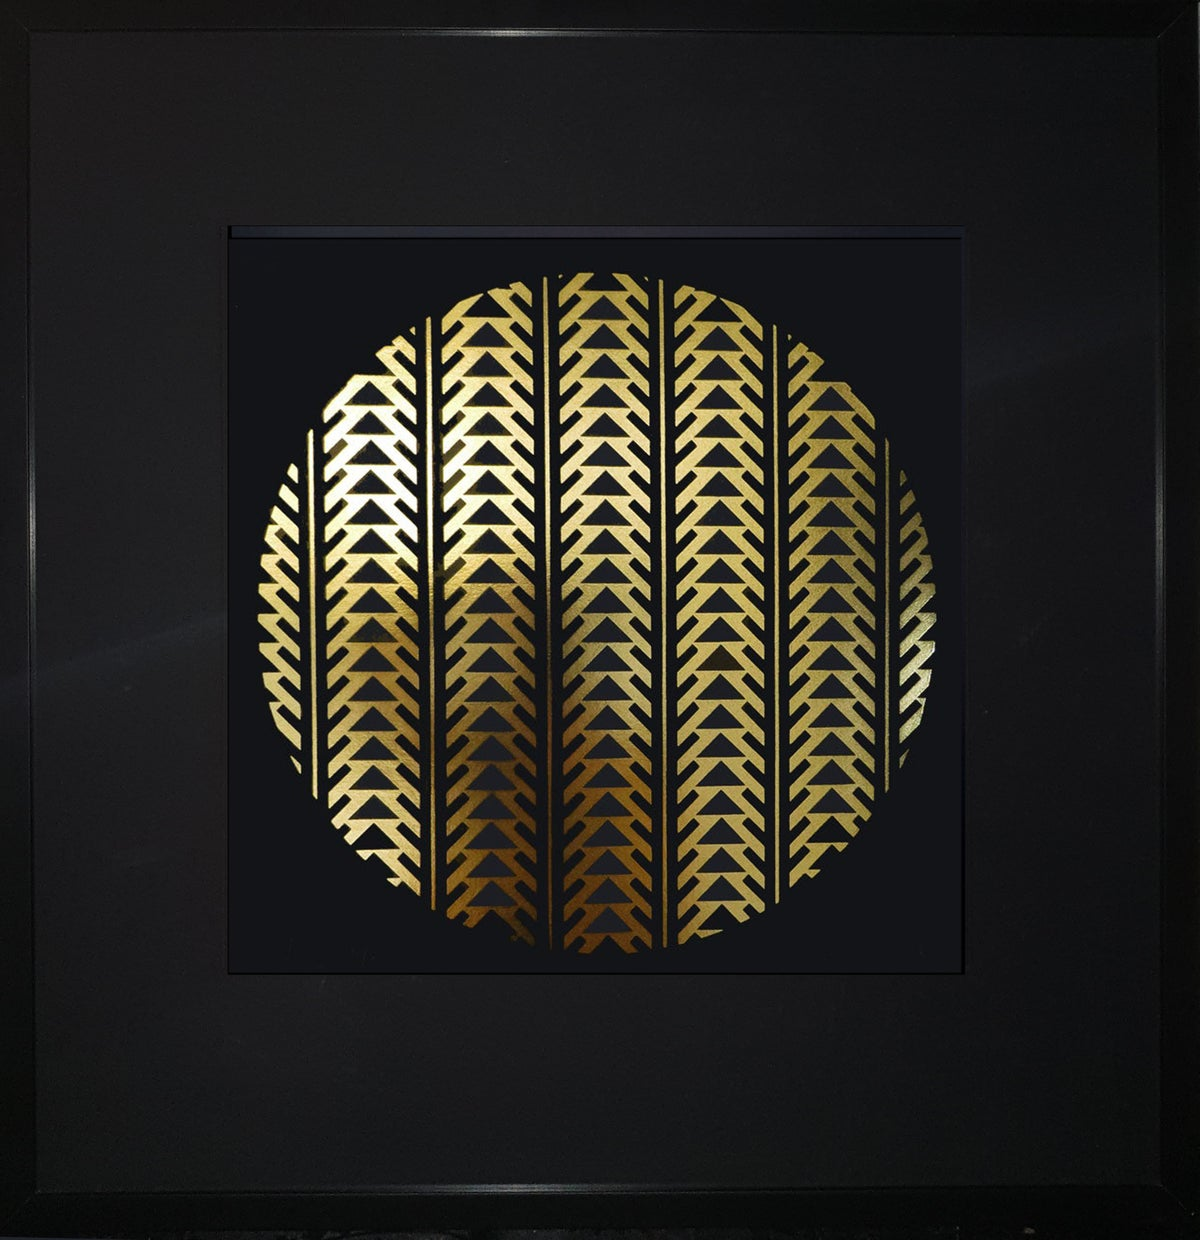 Image of 'Ascension' Limited Edition Gold foil screenprint